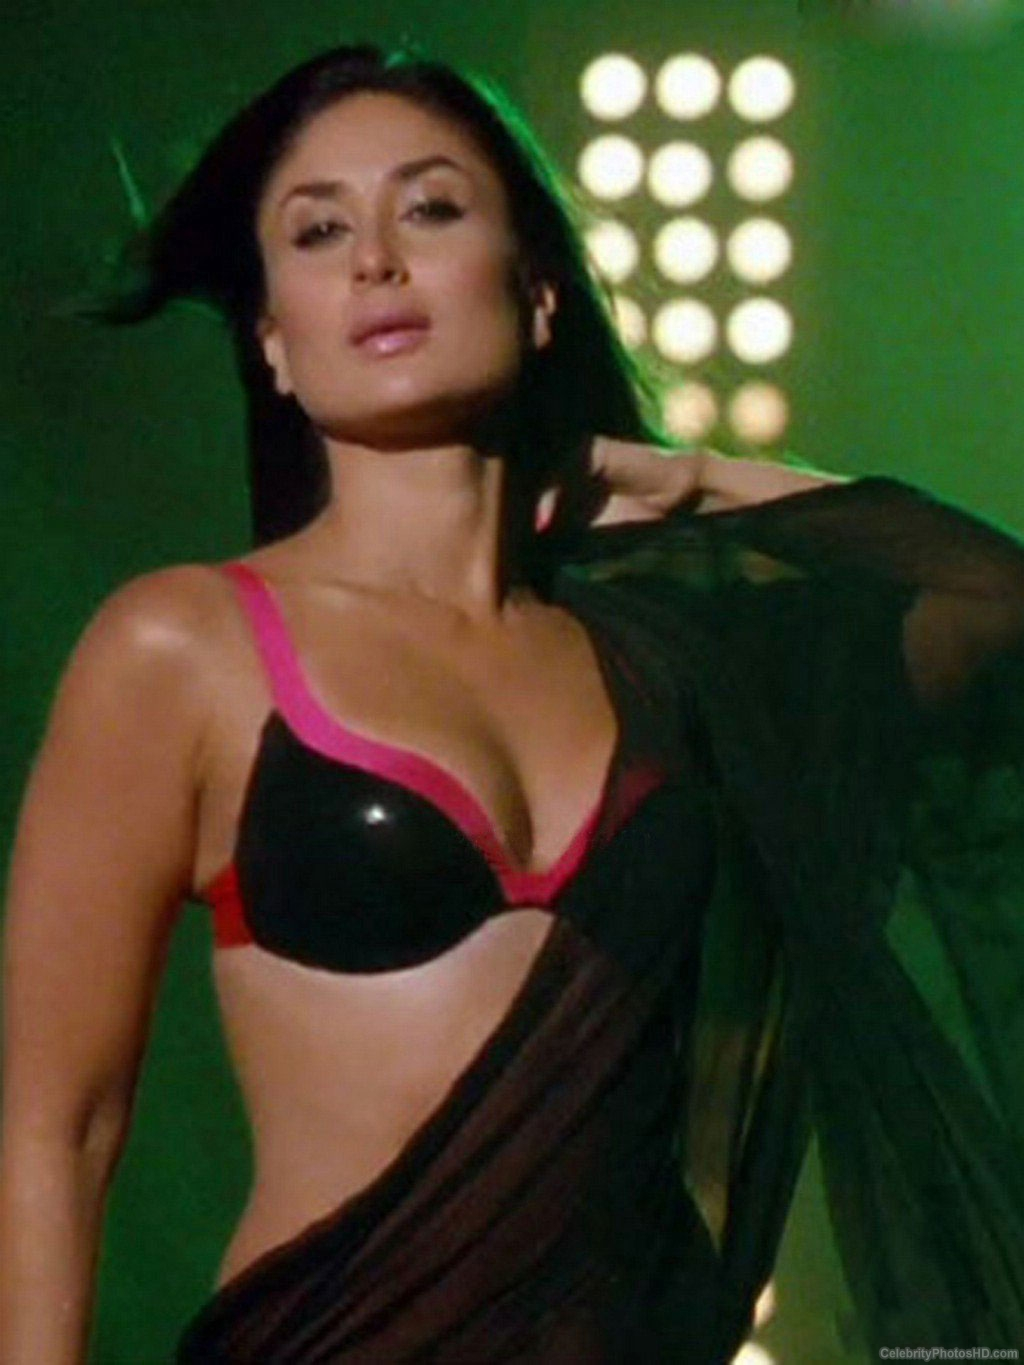 kareena-kapoor-latest-unseen-hot-picture-6